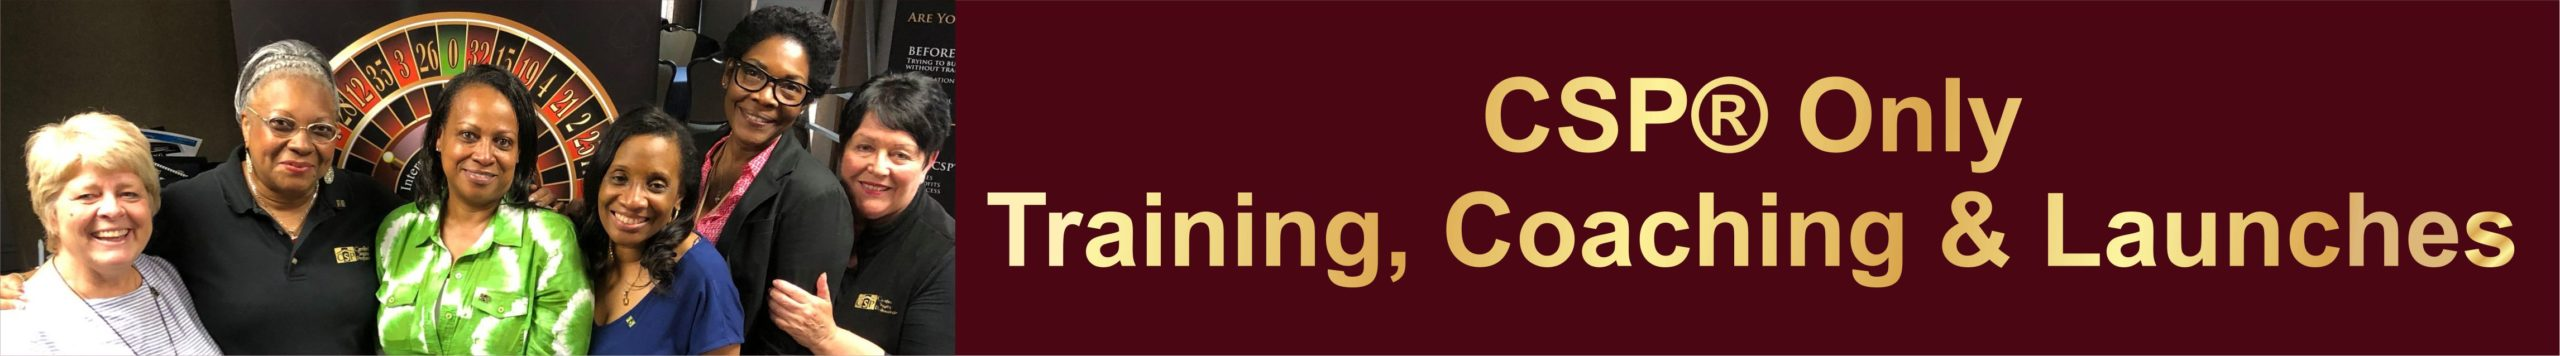 csp only training, coaching and launches